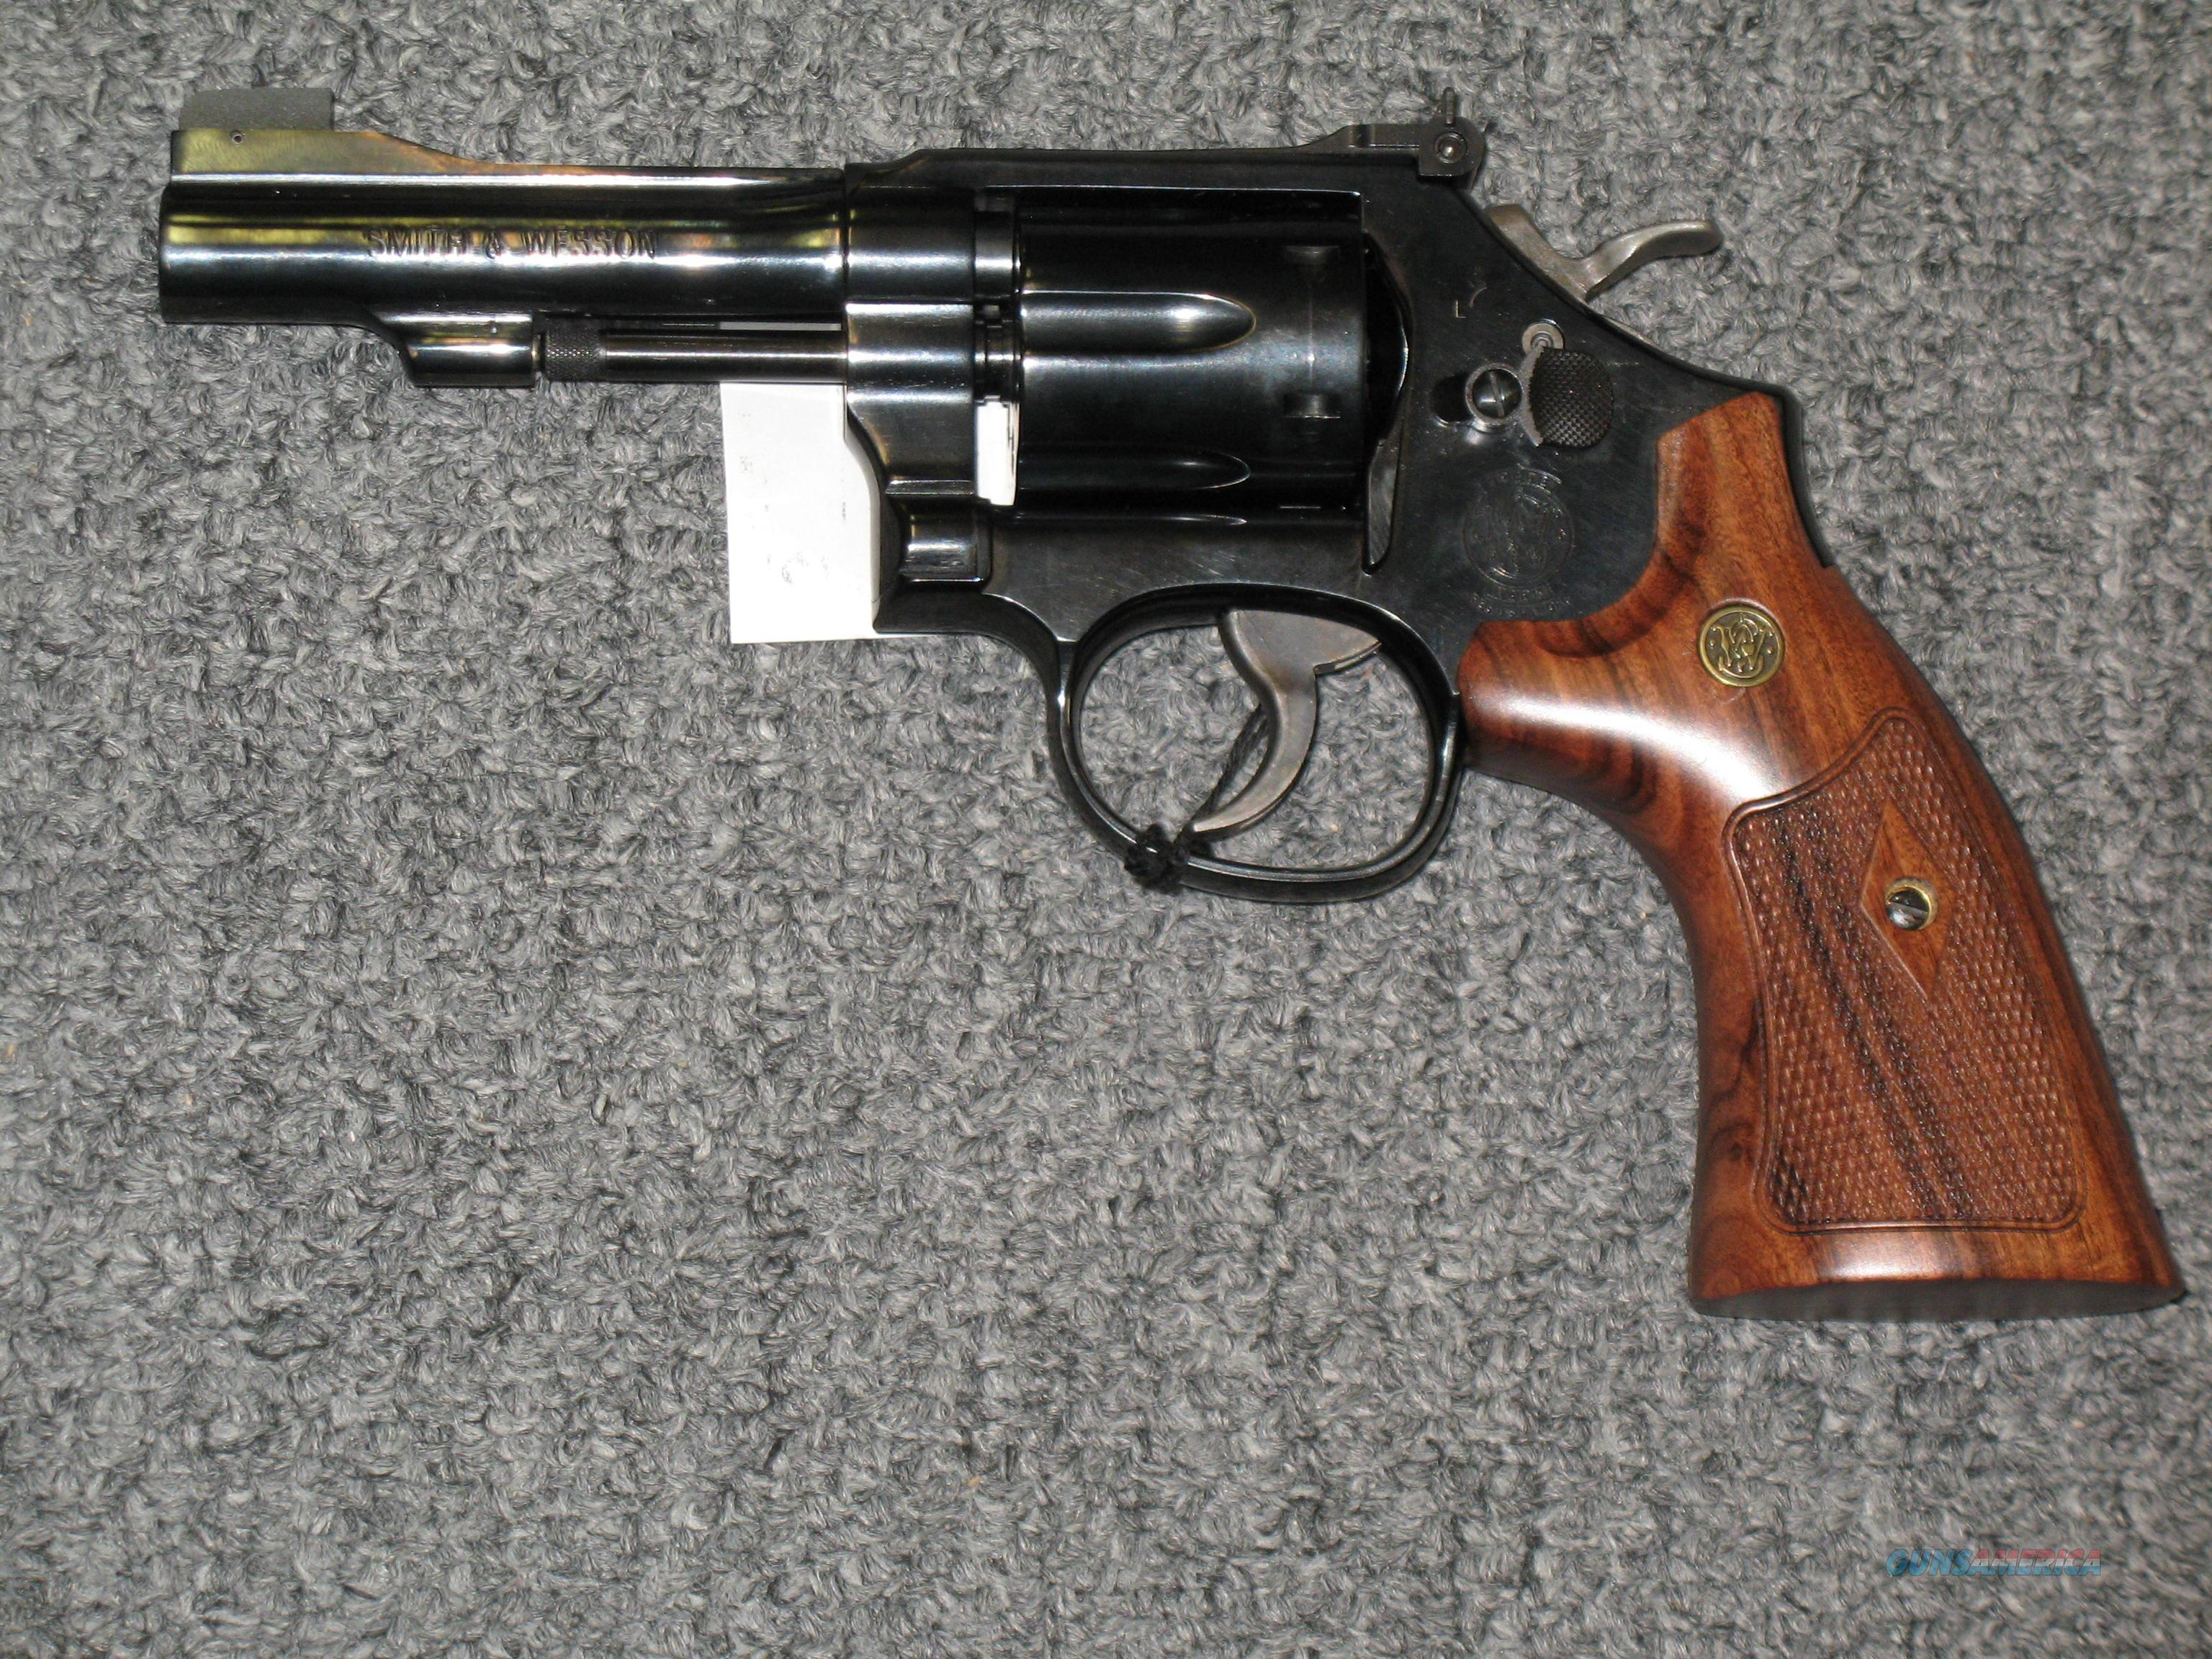 Smith & Wesson 48-7 w/adjustable rear sights  Guns > Pistols > Smith & Wesson Revolvers > Full Frame Revolver